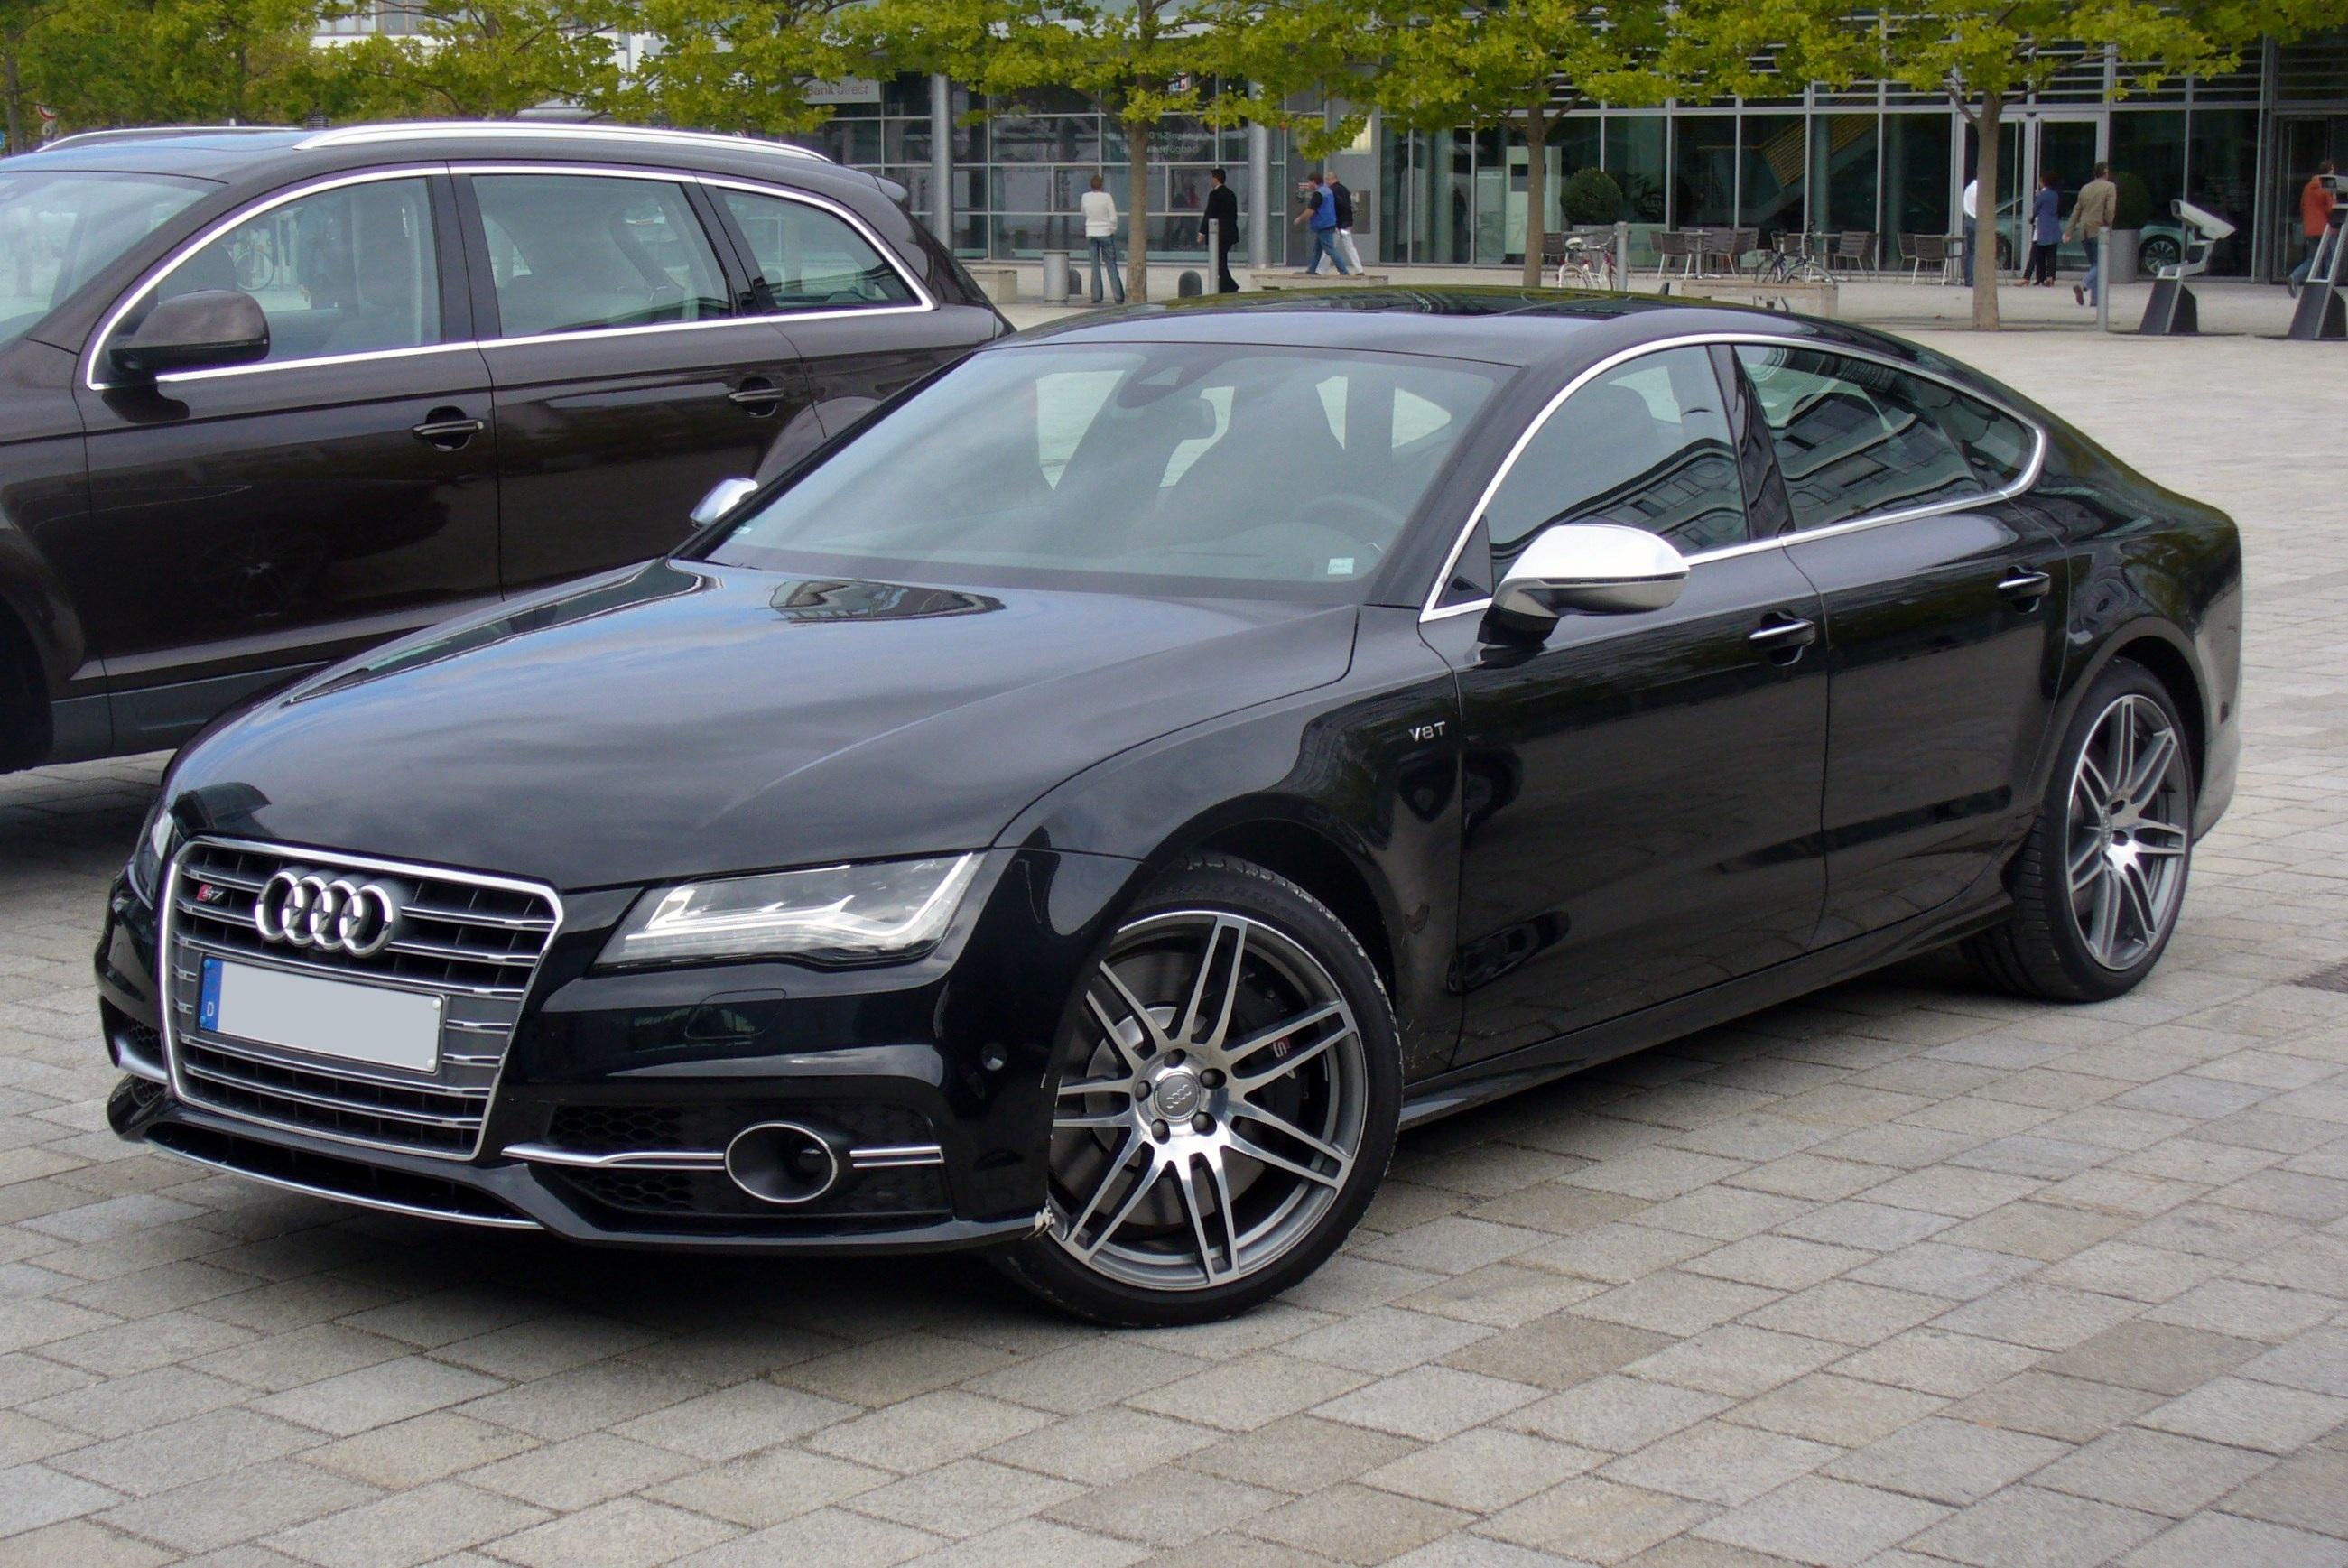 file audi s7 sportback 4 0 tfsi quattro s tronic jpg wikimedia commons. Black Bedroom Furniture Sets. Home Design Ideas